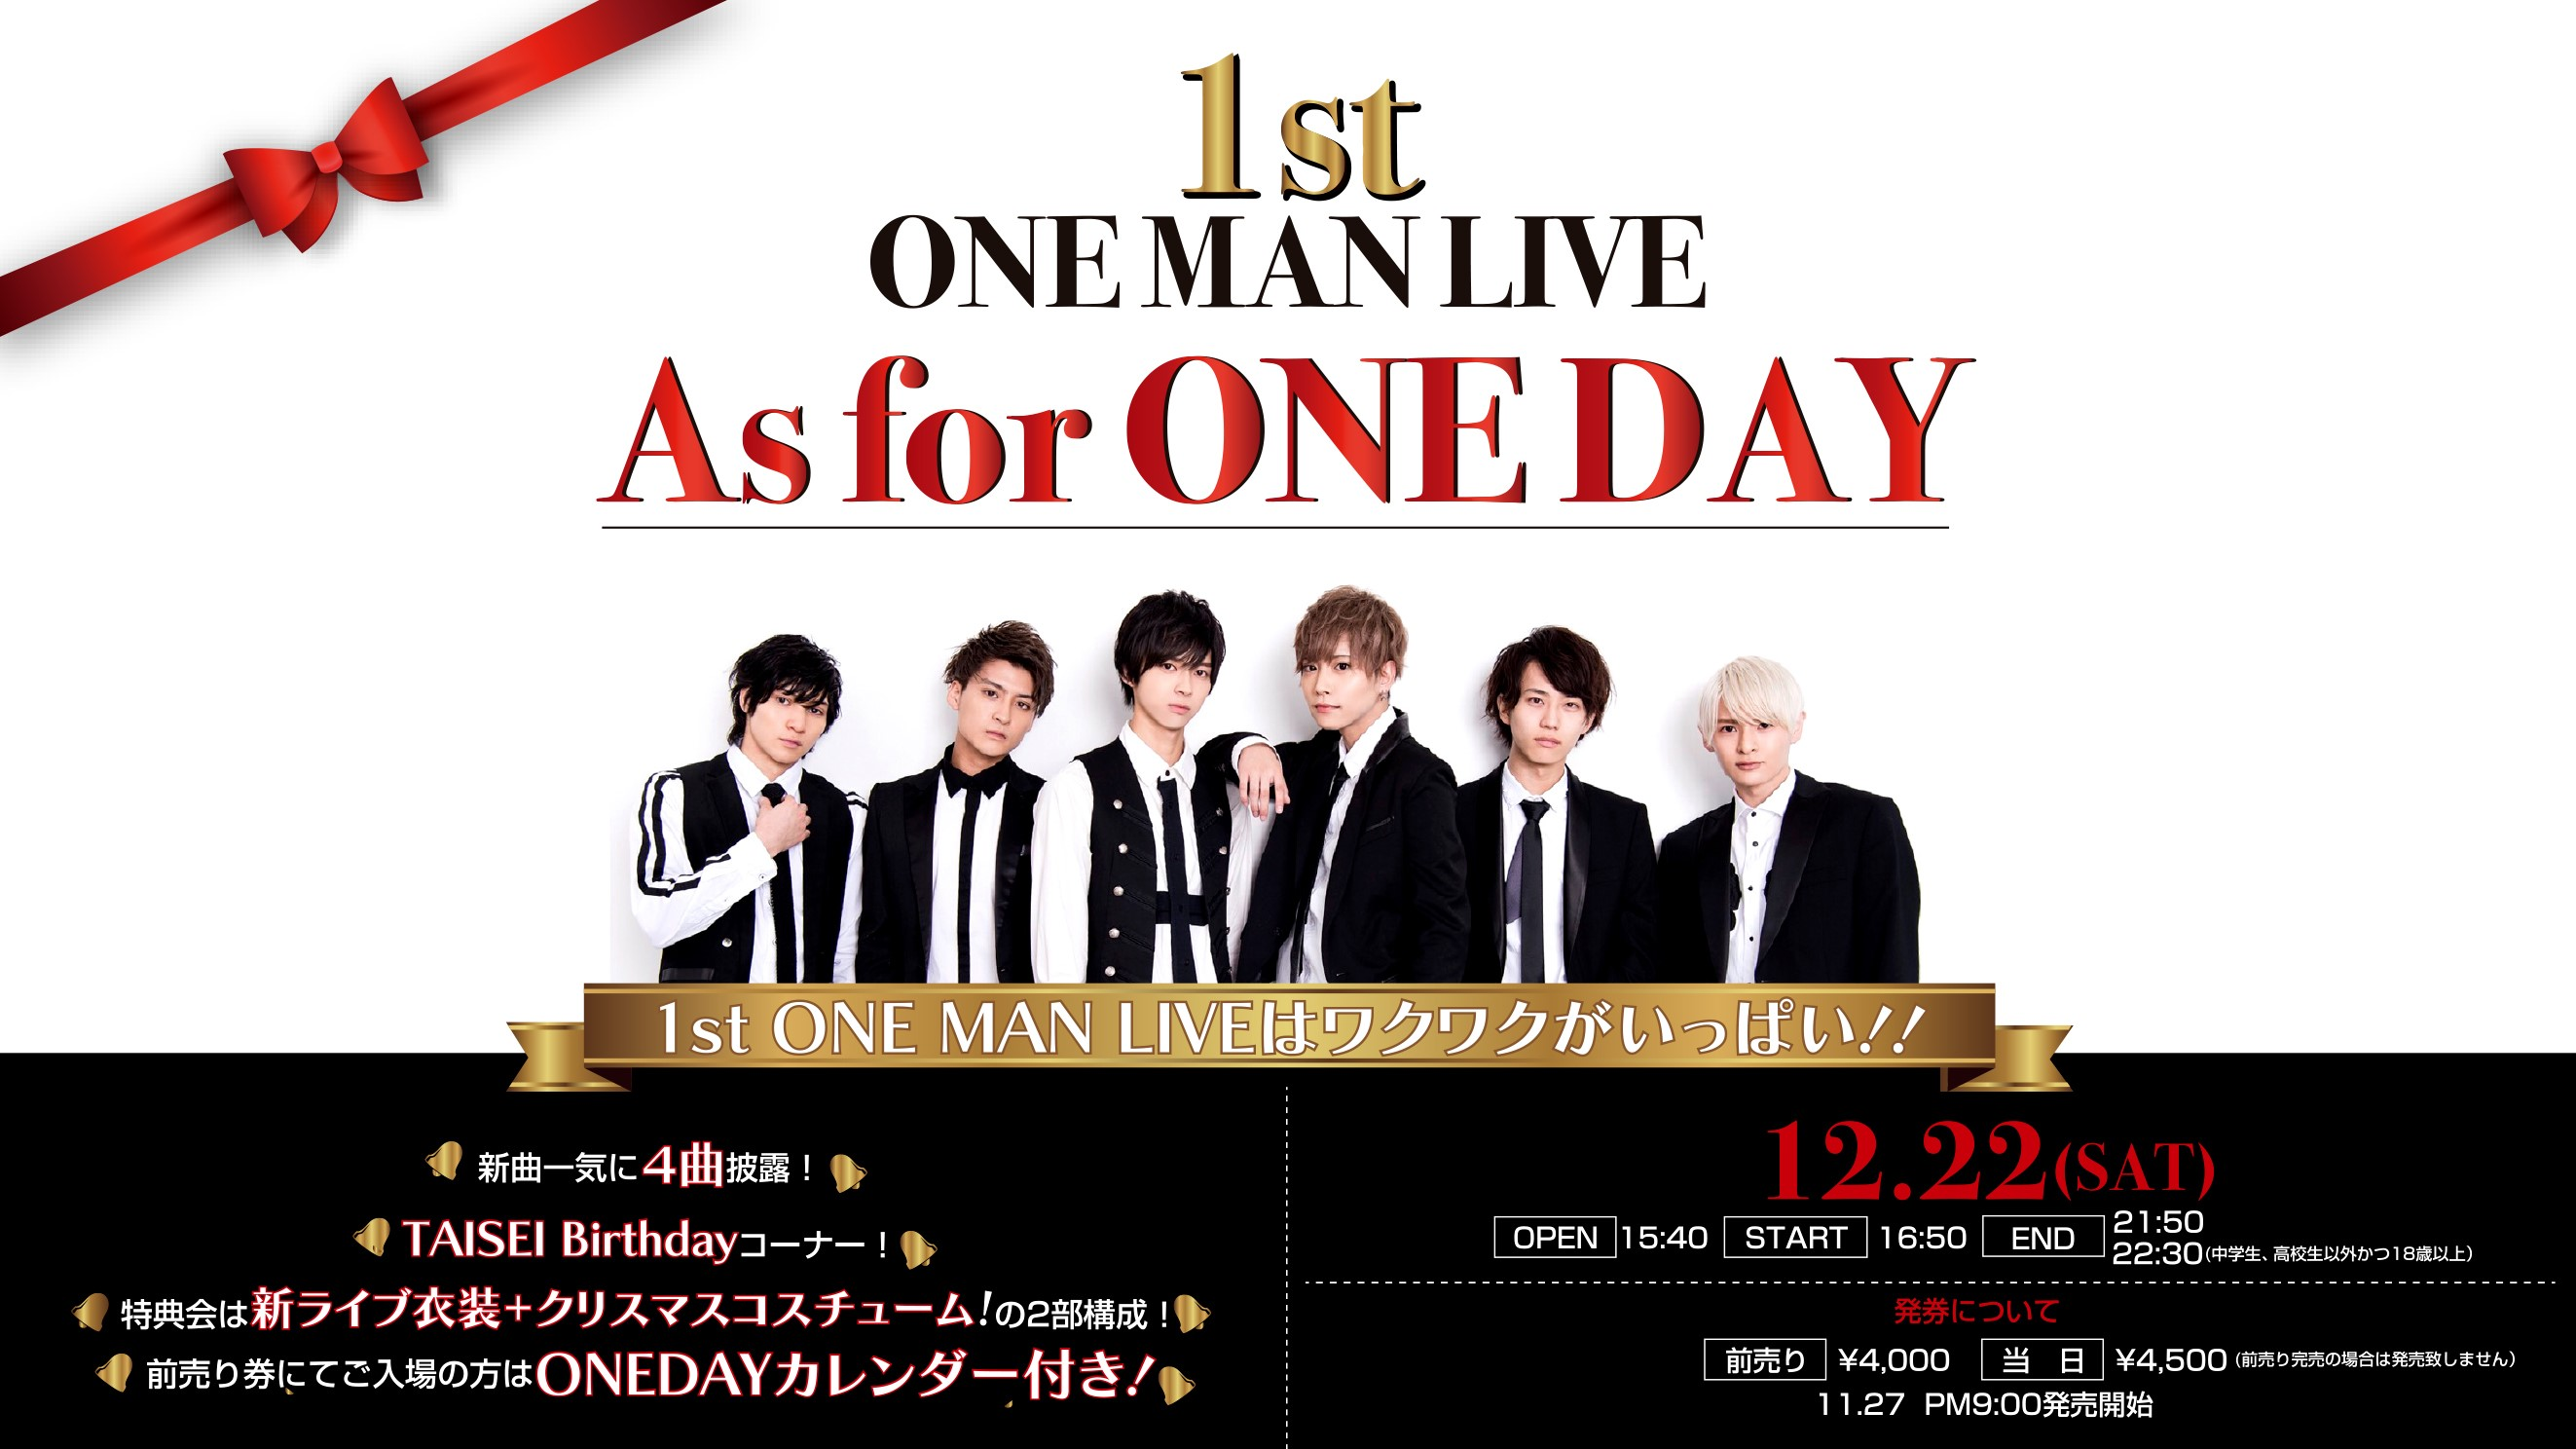 ONE DAY 1STワンマンライブ「As for ONE DAY」